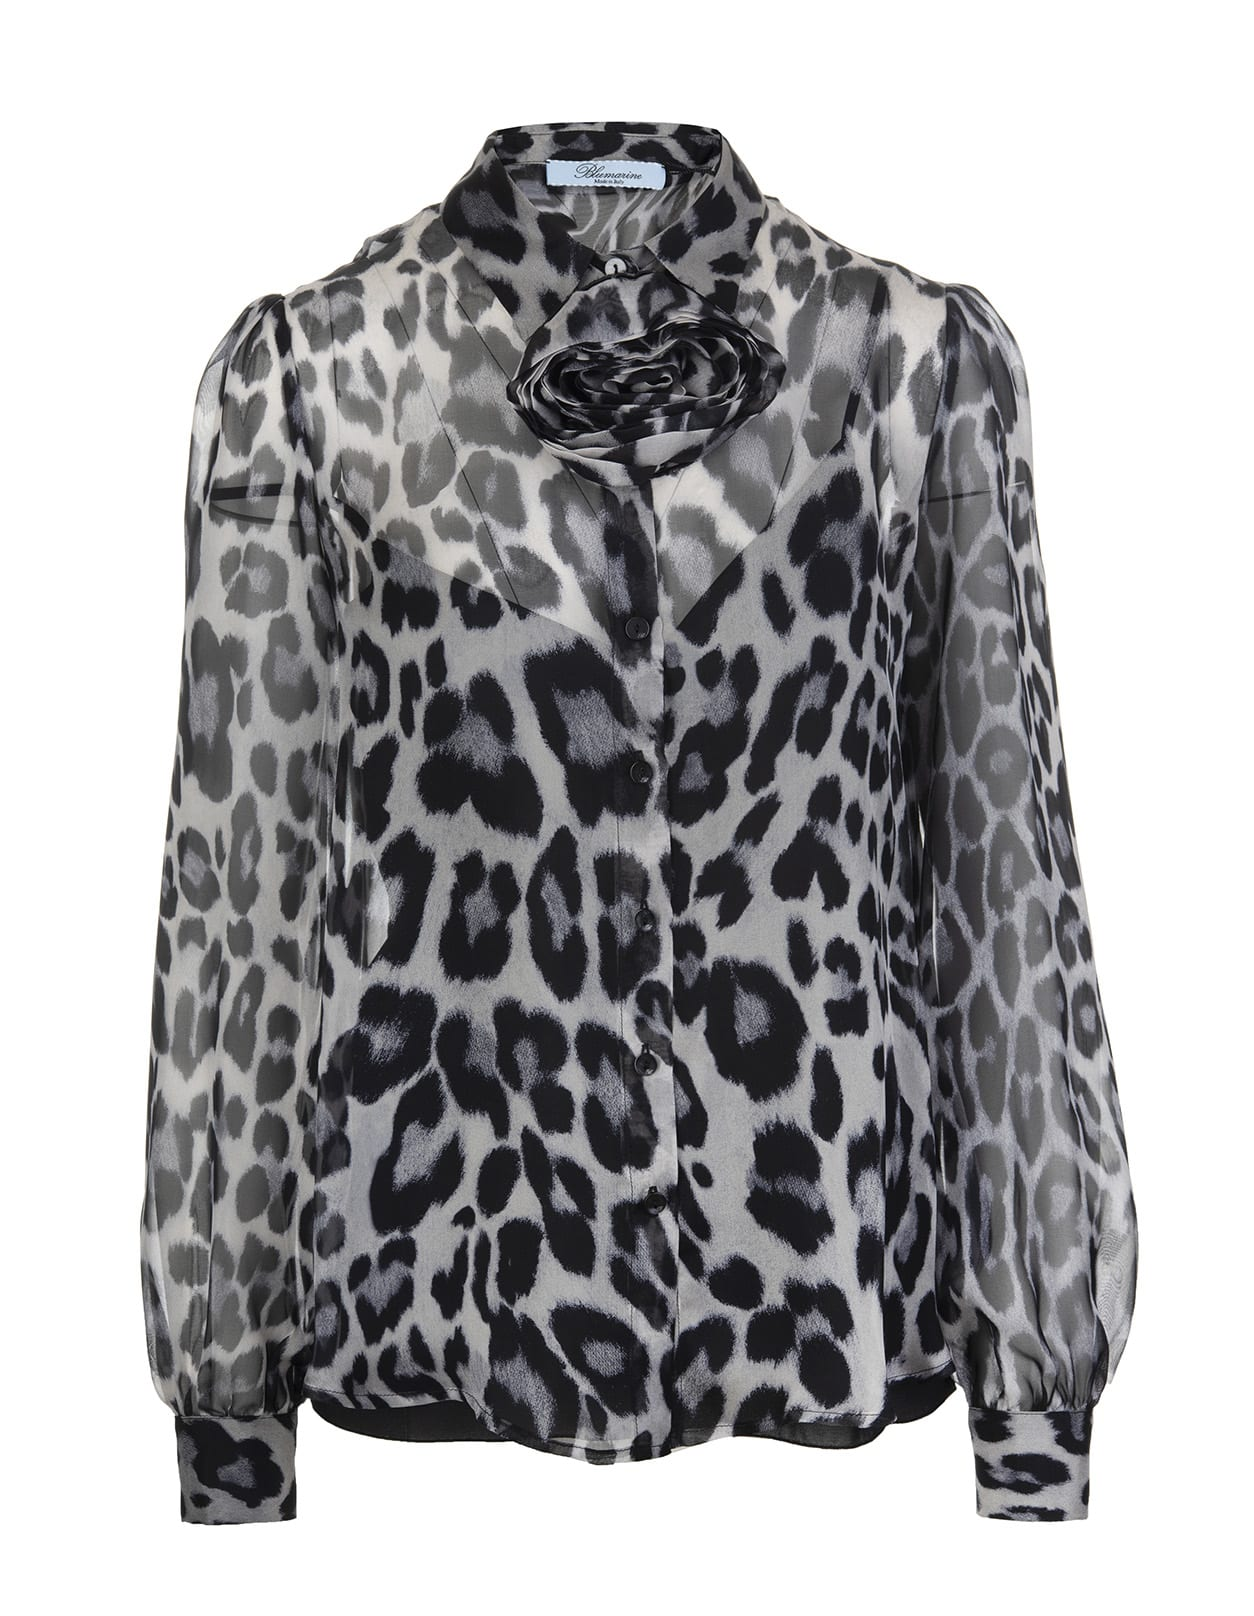 Blumarine GREY AND BLACK ANIMALIER WOMAN SHIRT